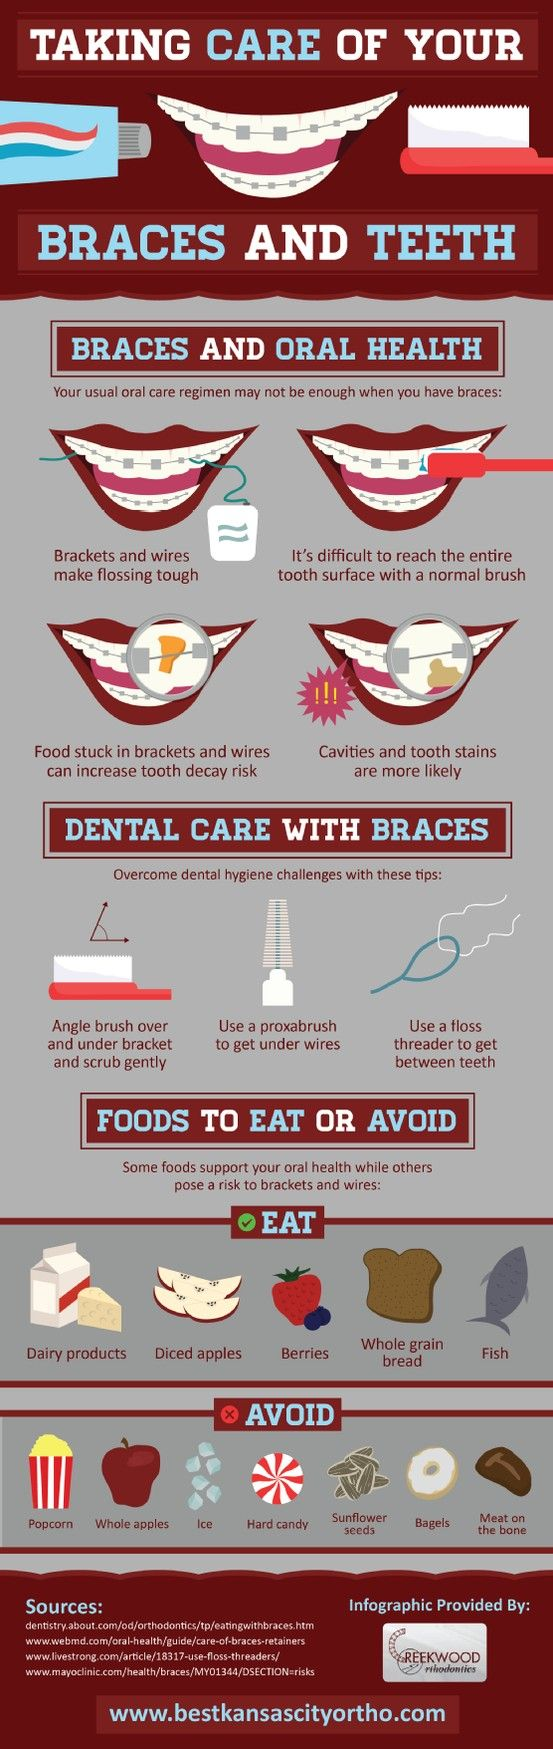 Taking Care of your Braces and Teeth